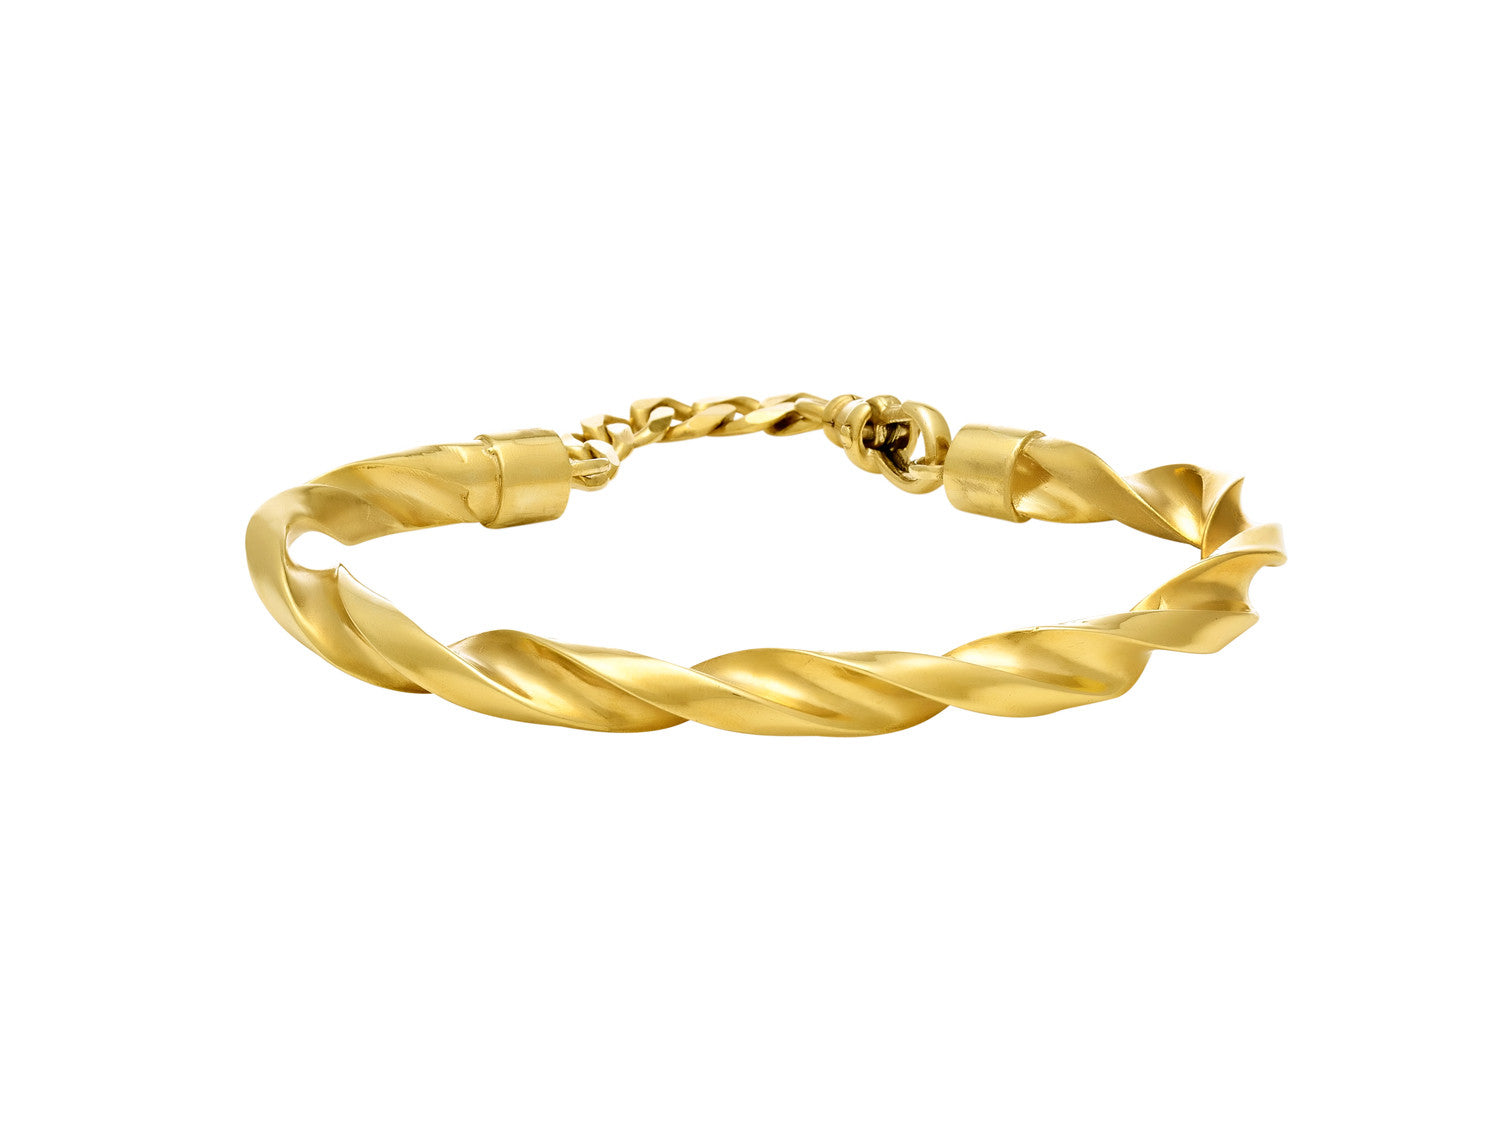 Coco\'s Liberty: Drill bangle | Jewelry -  Hiphunters Shop